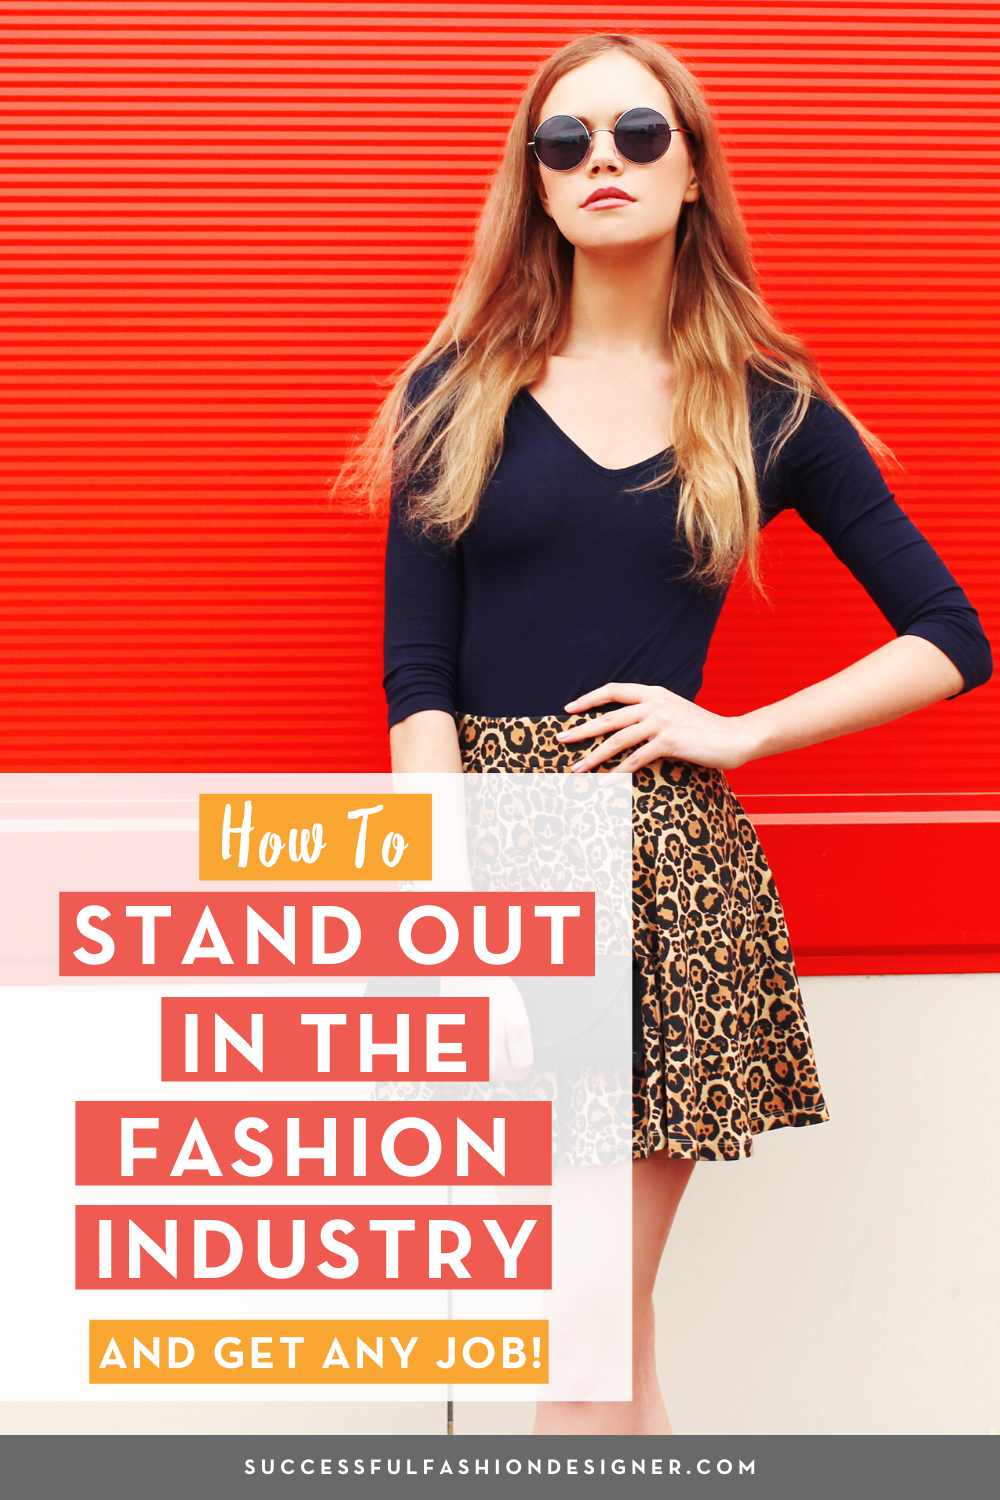 Sfd090 How To Stand Out In Your Fashion Career And Always Get The Job Offer Courses Free Tutorials On Adobe Illustrator Tech Packs Freelancing For Fash Career In